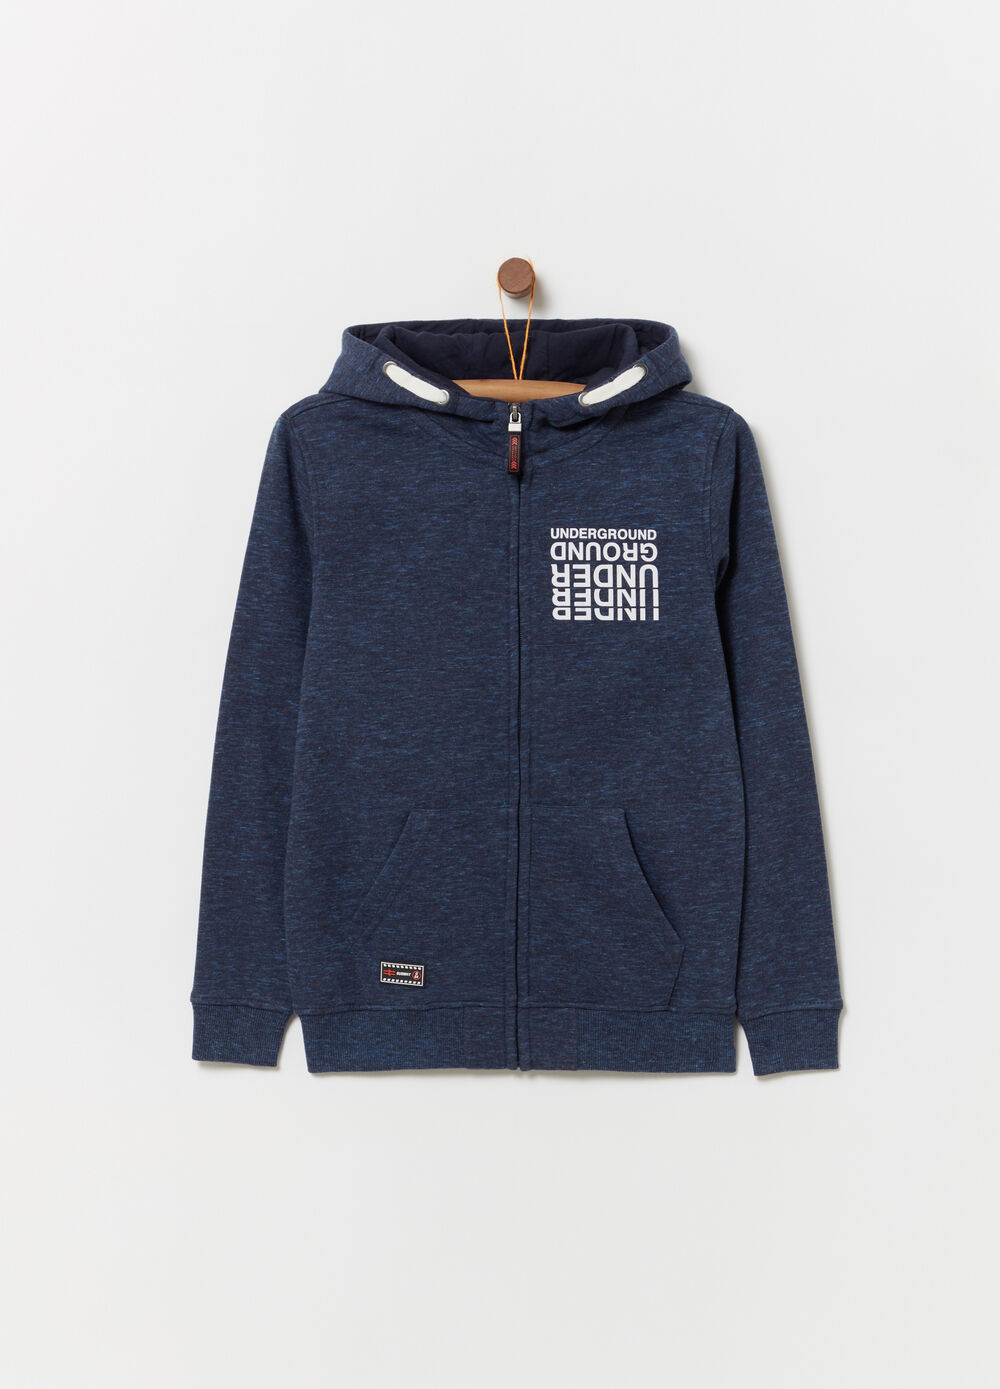 Heavy sweatshirt with pouch pocket